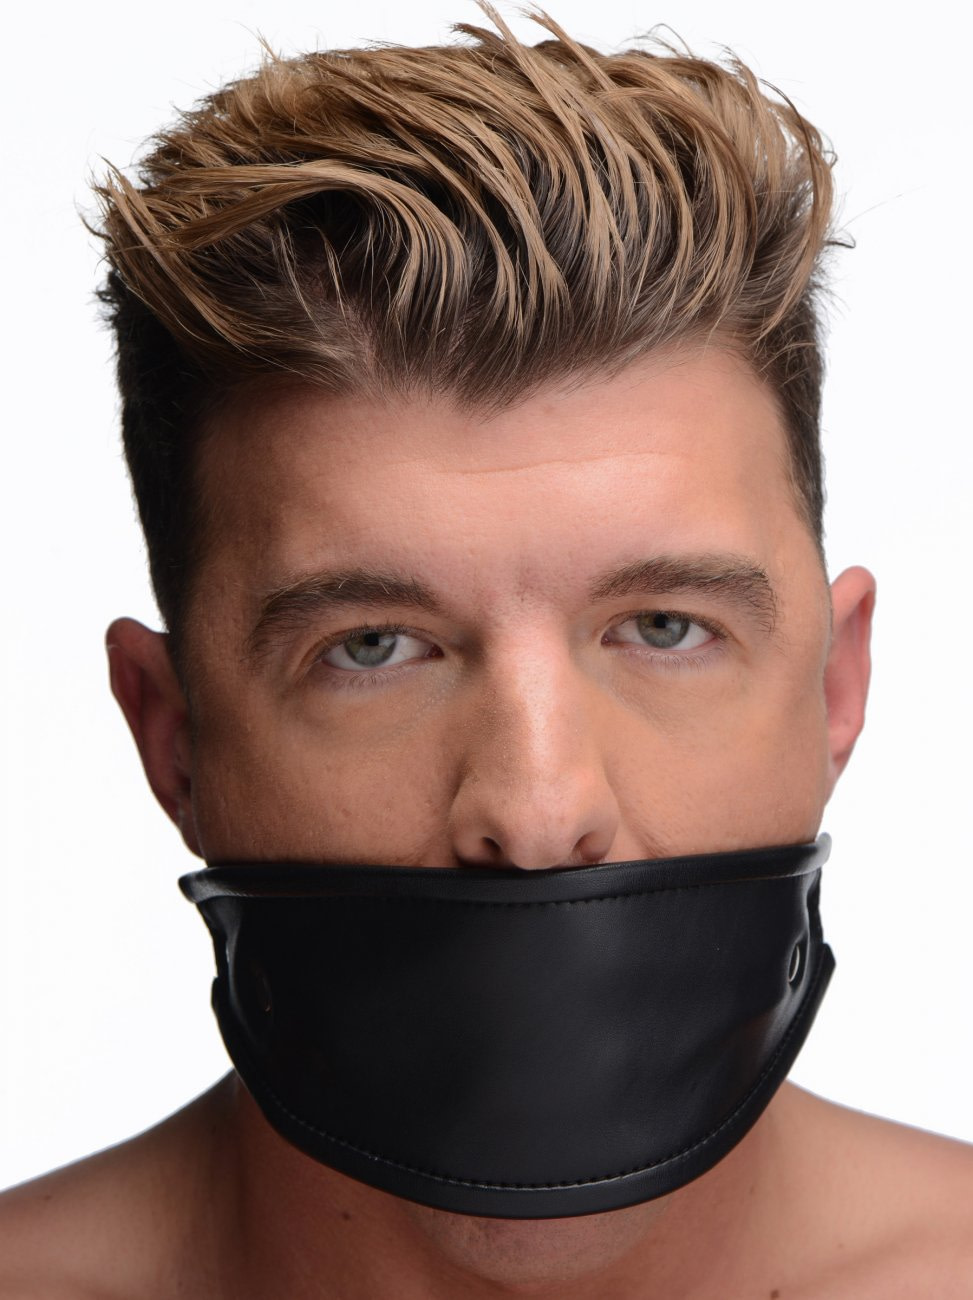 Leather Covered Ball Gag - The BDSM Toy Shop